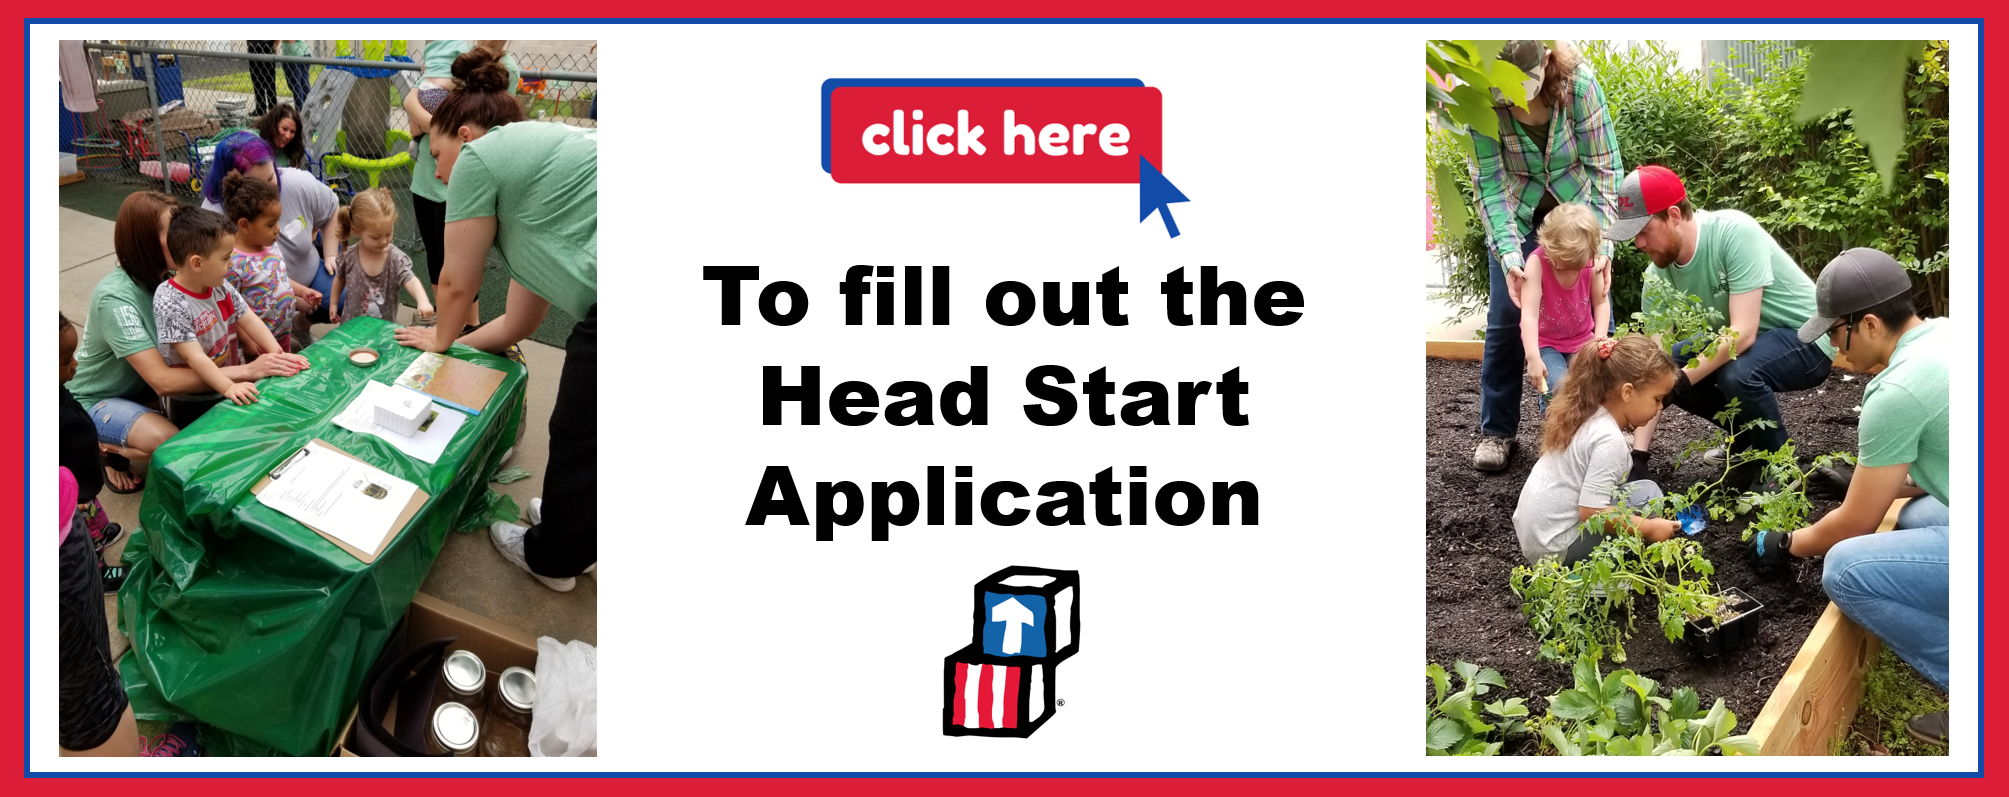 Head Start Application